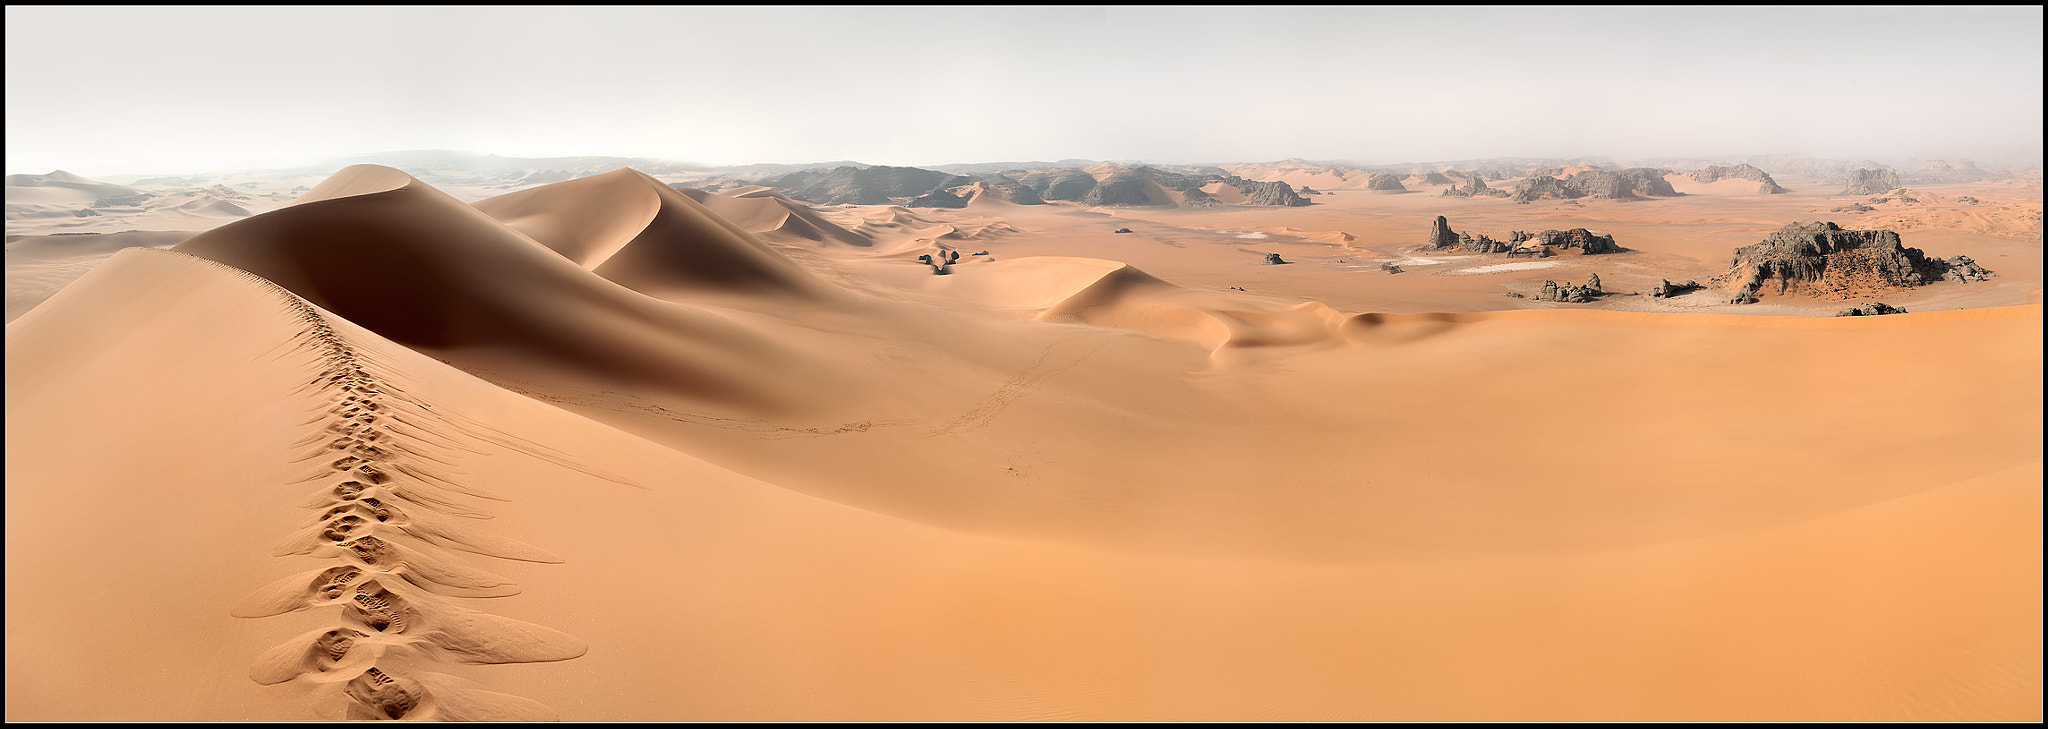 Photograph Sahara, Algeria by Yury Pustovoy on 500px